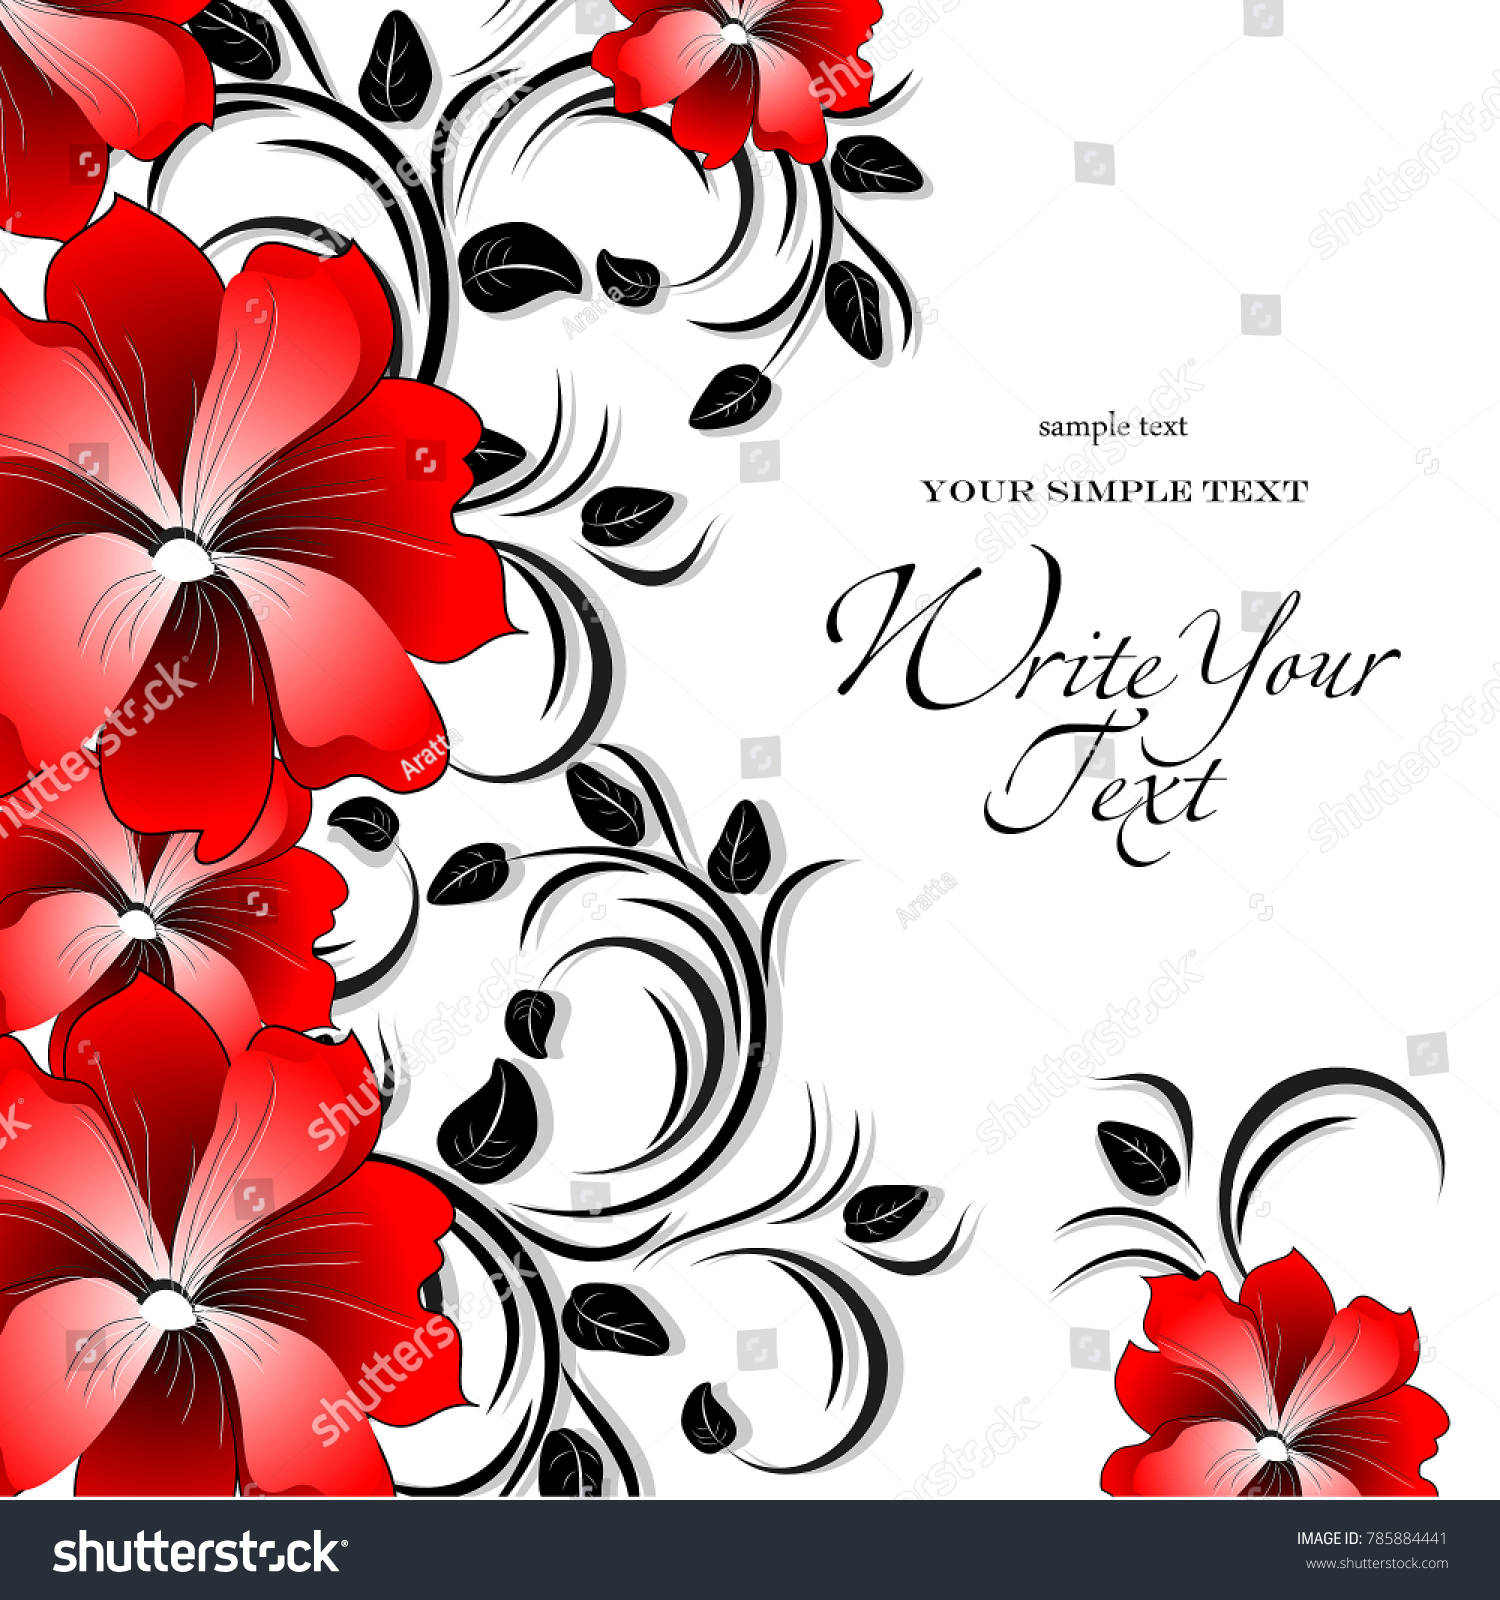 wedding card or invitation with abstract floral background elegance pattern with flowers abstract greeting